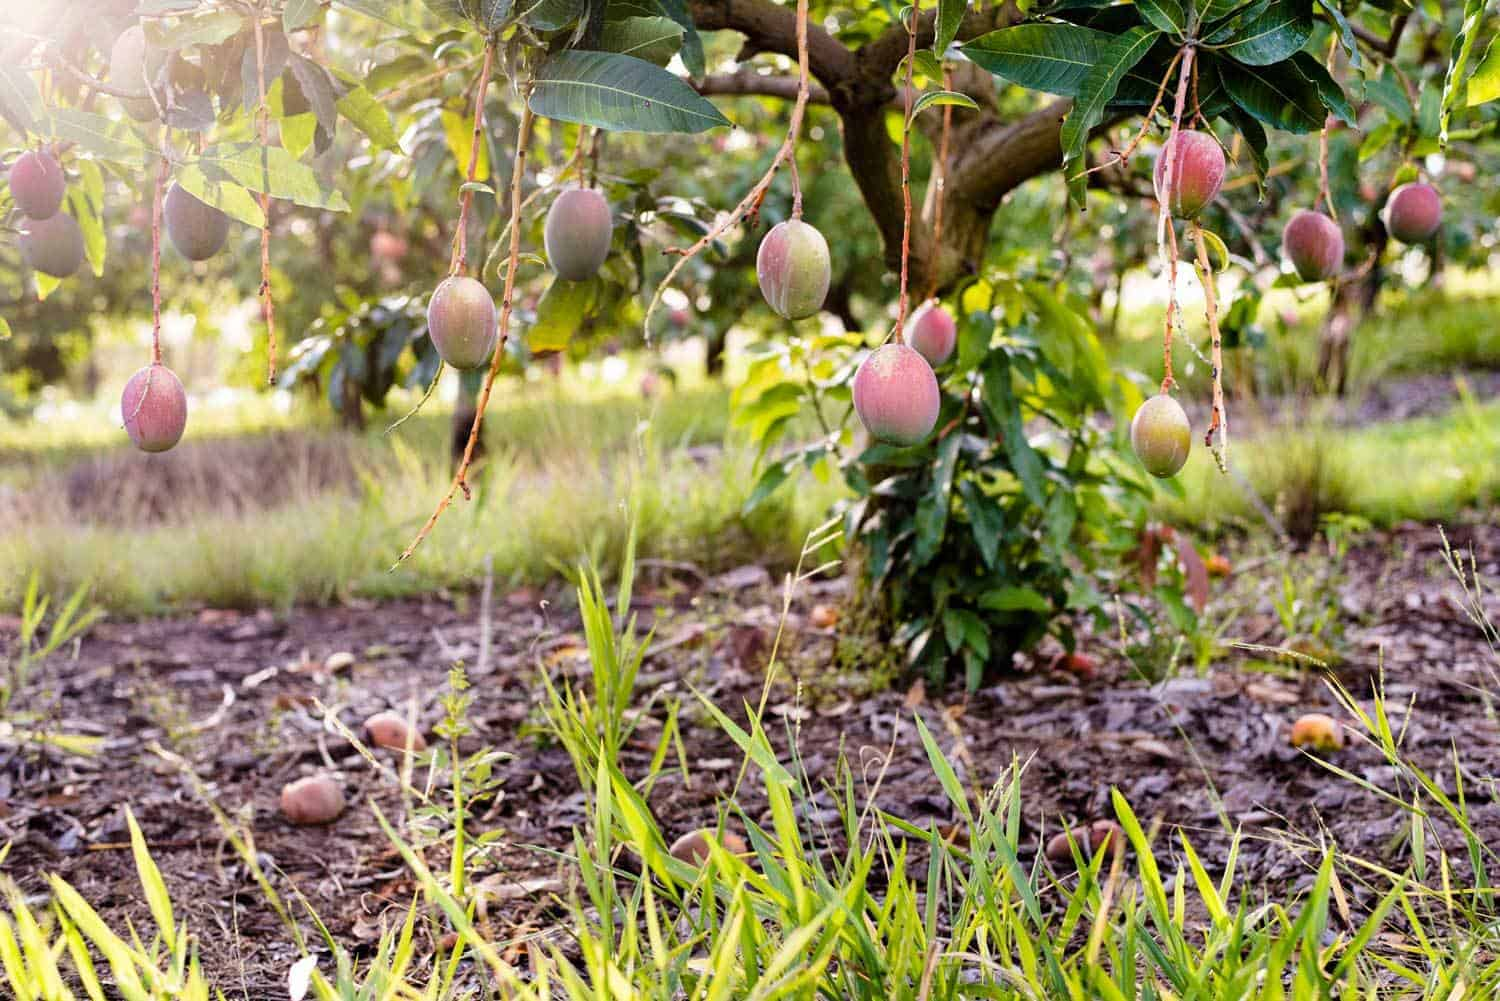 Mango trees on Groves Grown Tropical Fruits farm